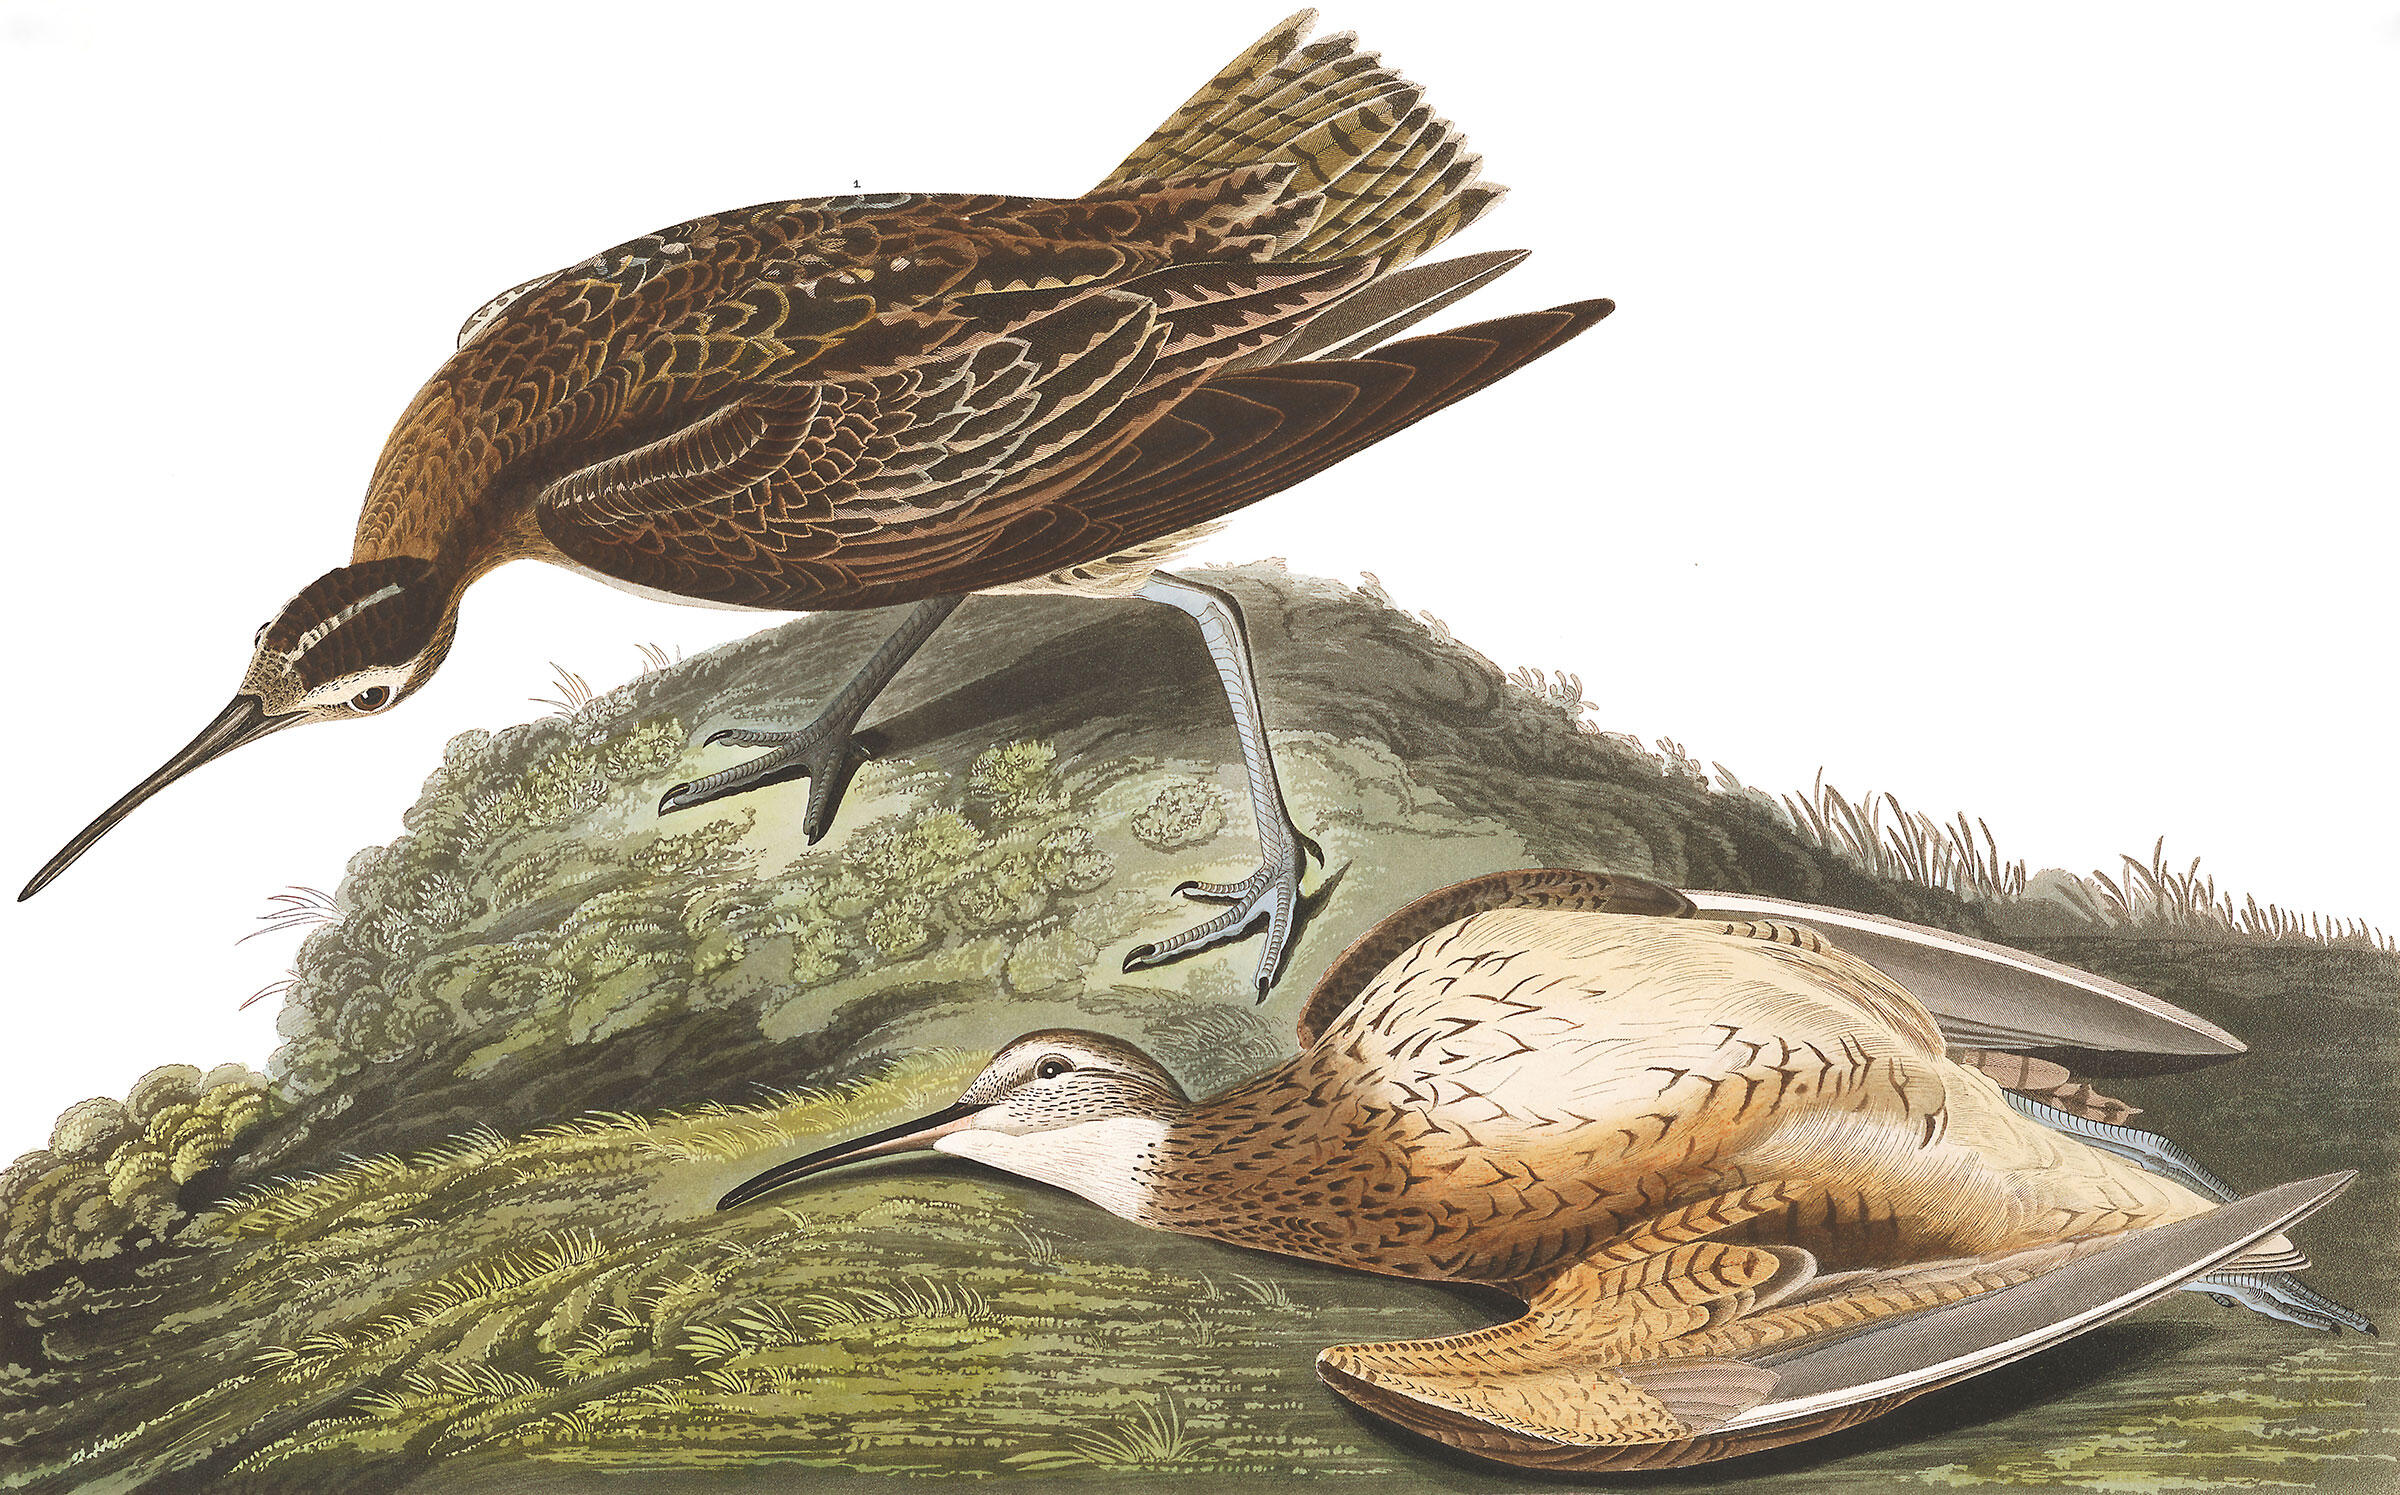 Millions of Eskimo Curlews once descended on the Great Plains during their northward migration each year. Now most of those grasslands are cornfields—and curlew populations declined accordingly. Illustration: John James Audubon